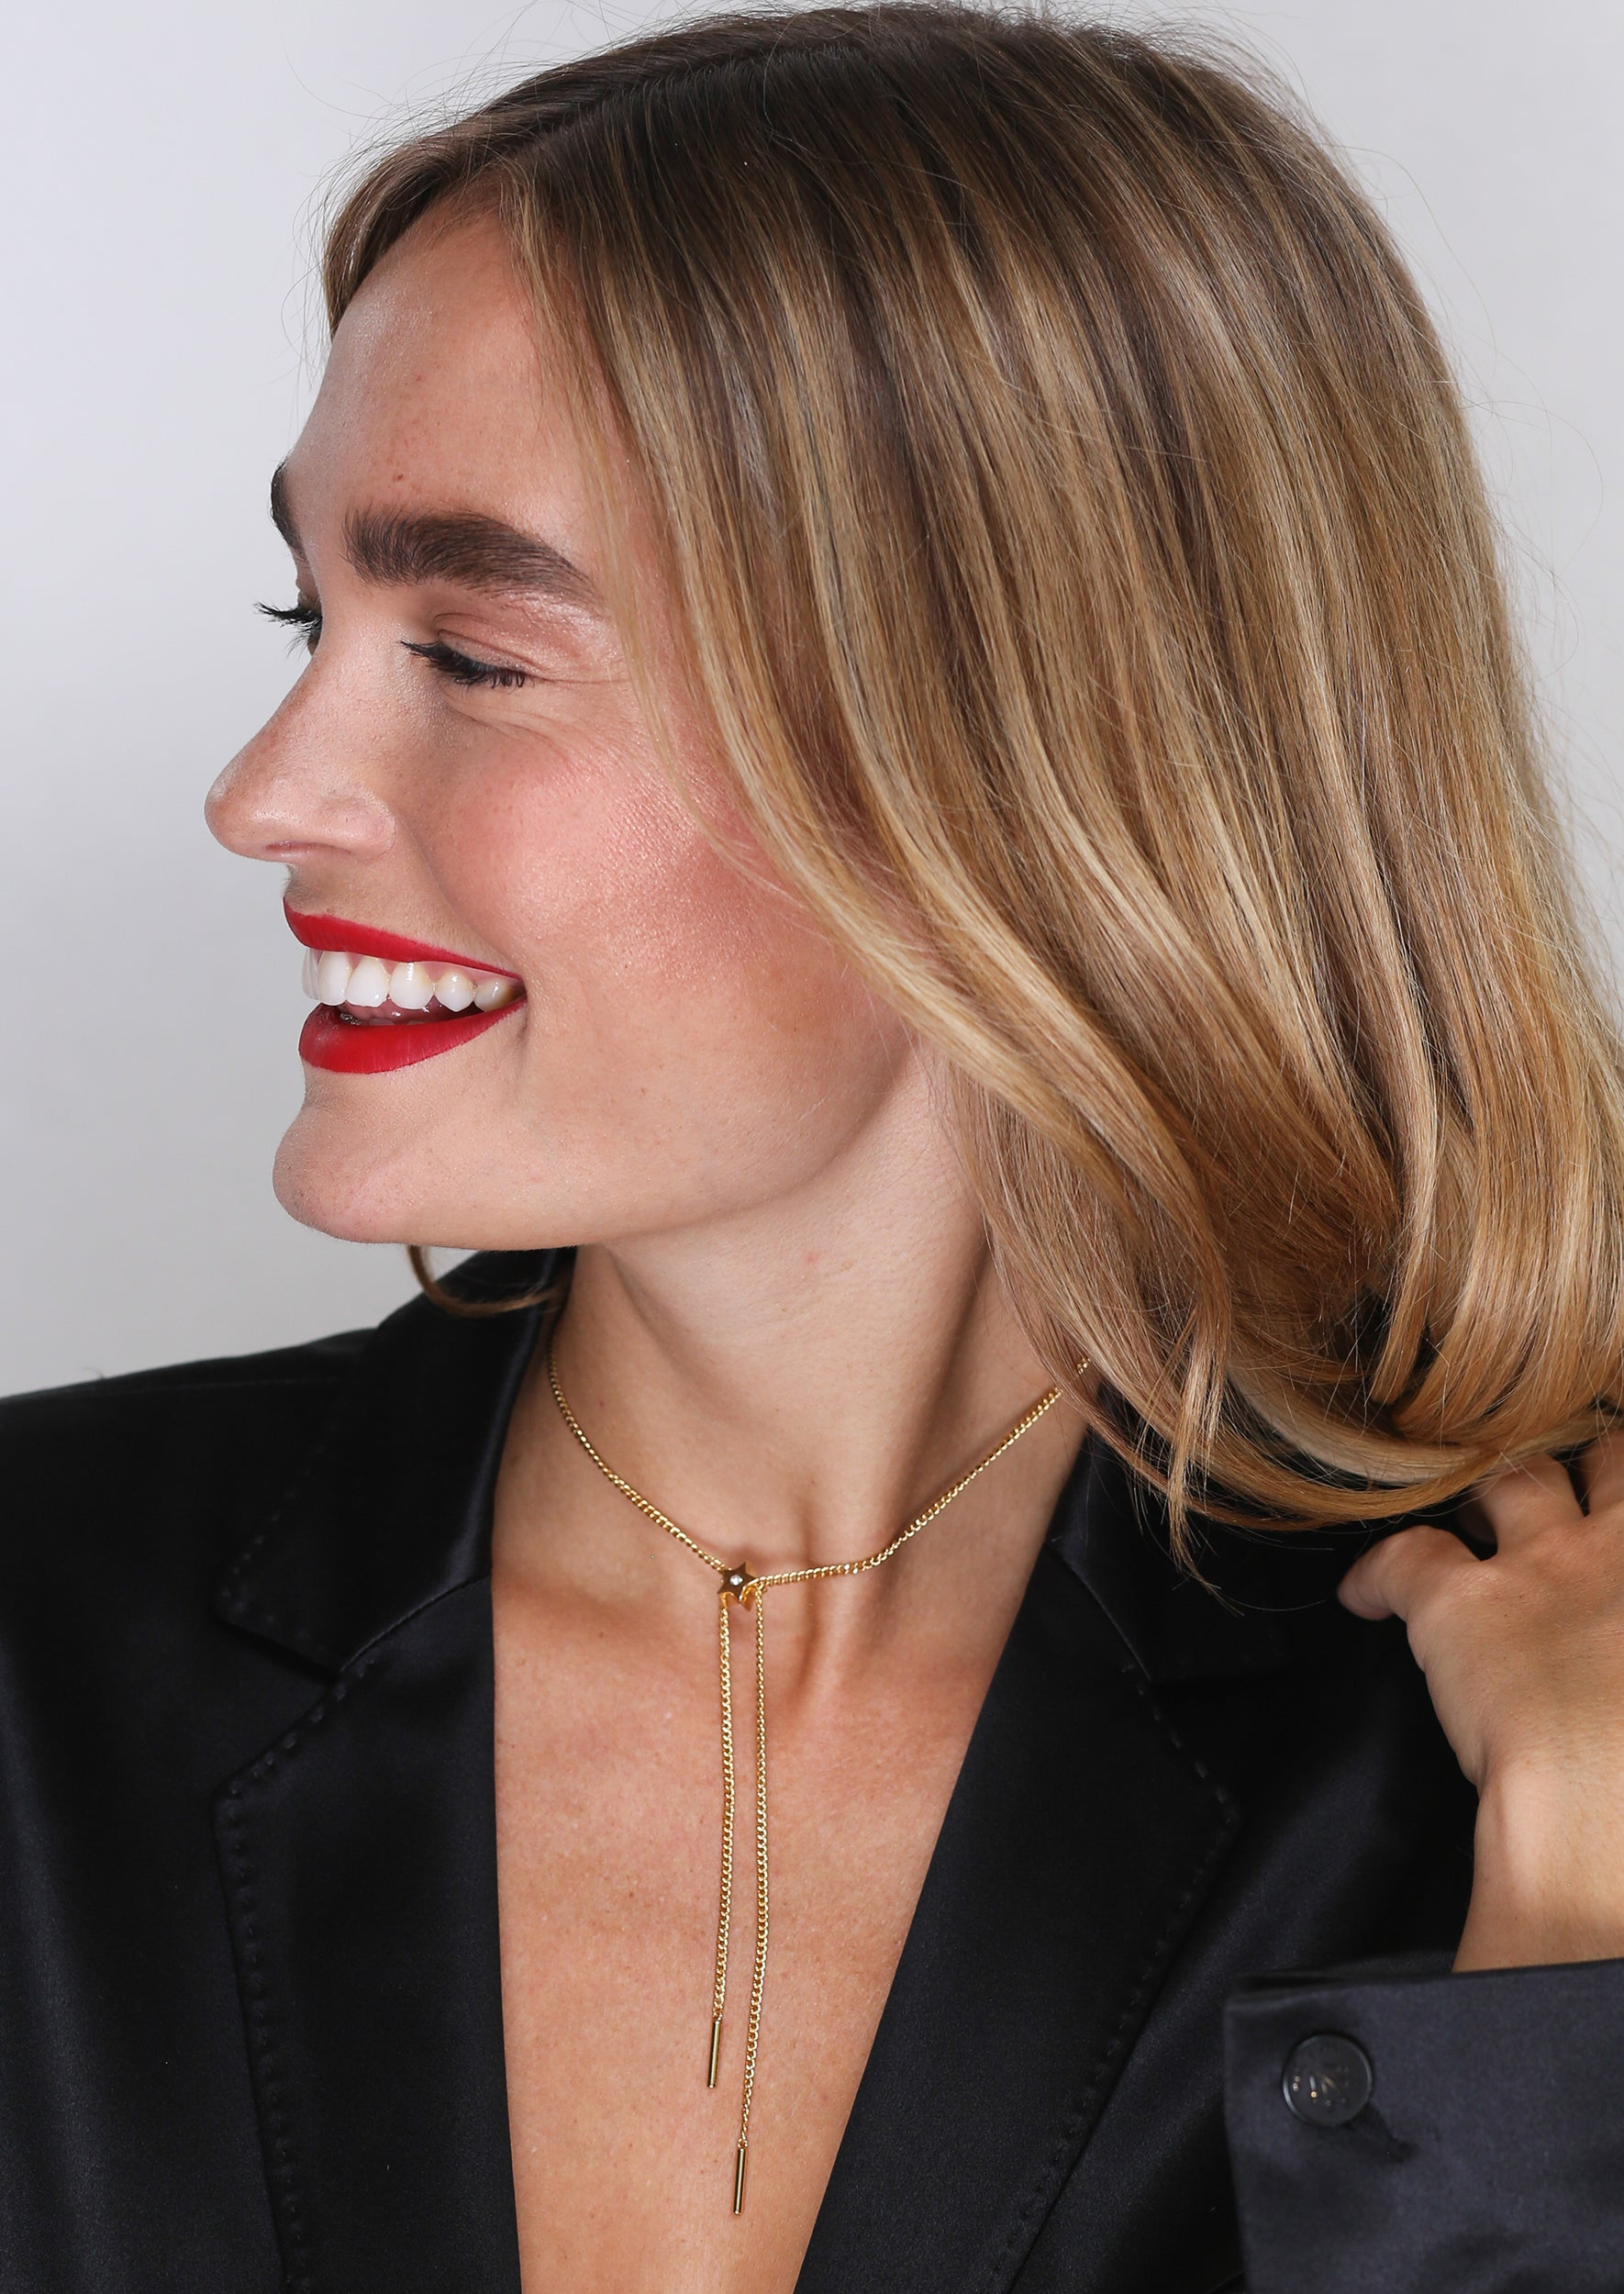 Star Slide Choker - Jules Smith - 14K Gold Plated - Boho Jewelry